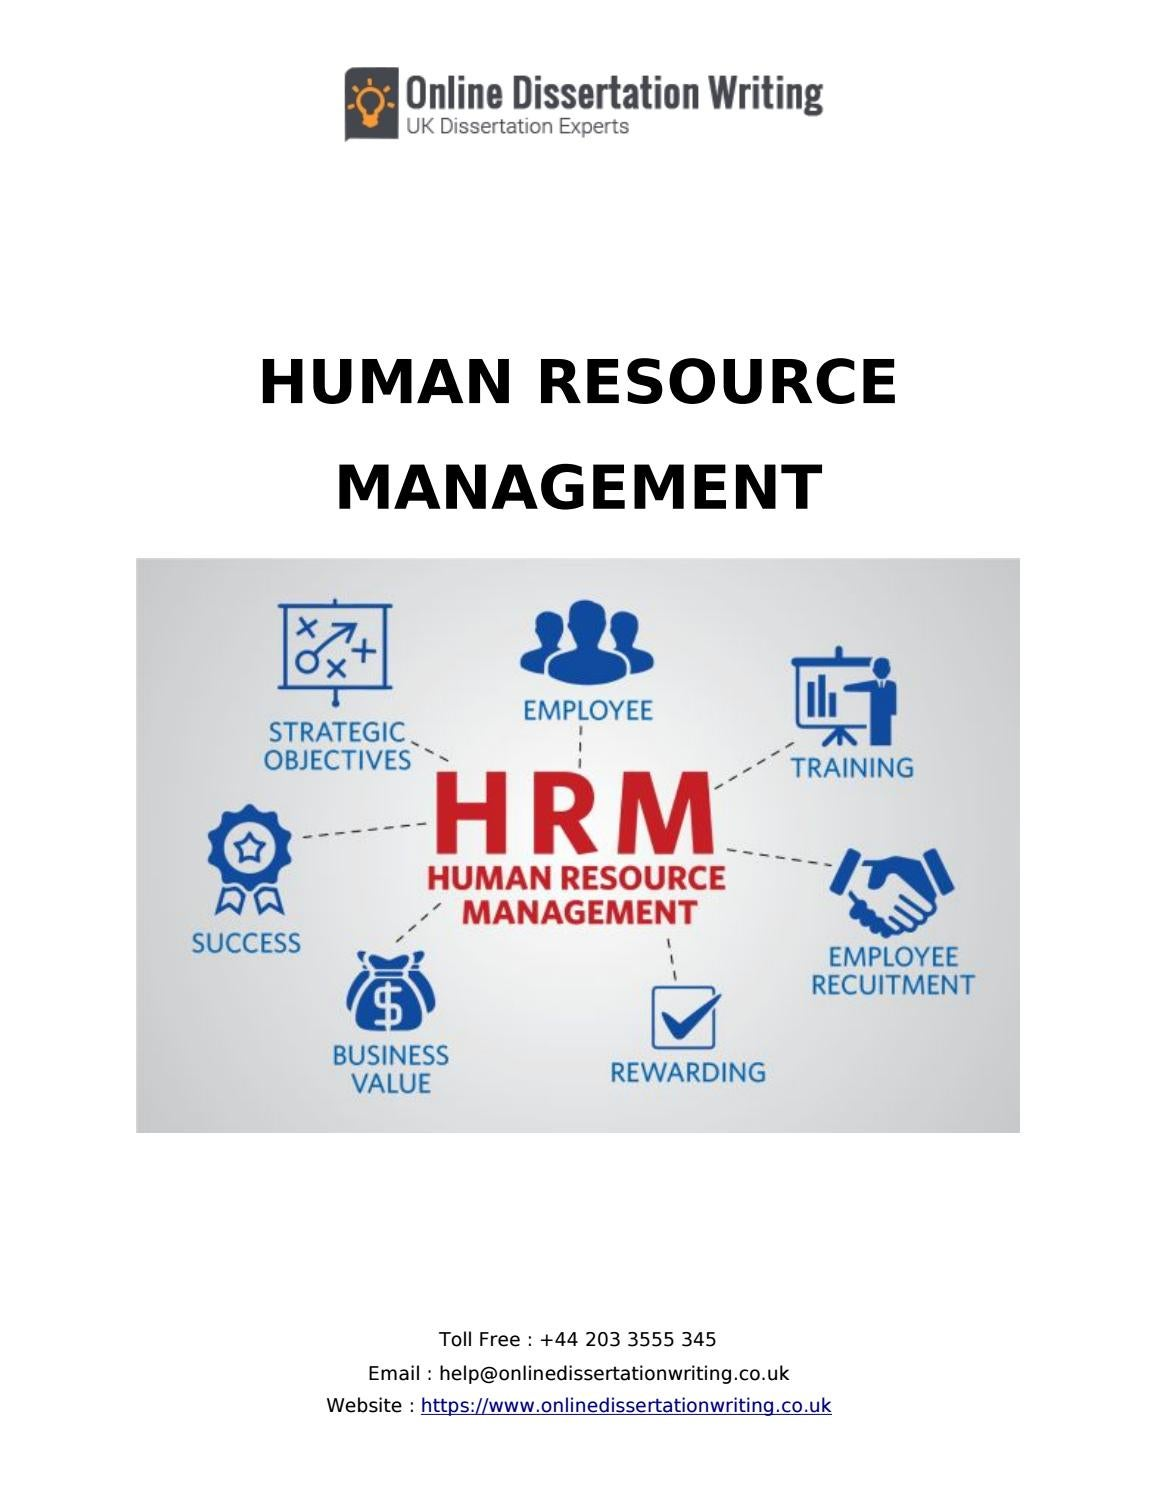 human resources management dissertations How about Some Fun Facts about our agency?